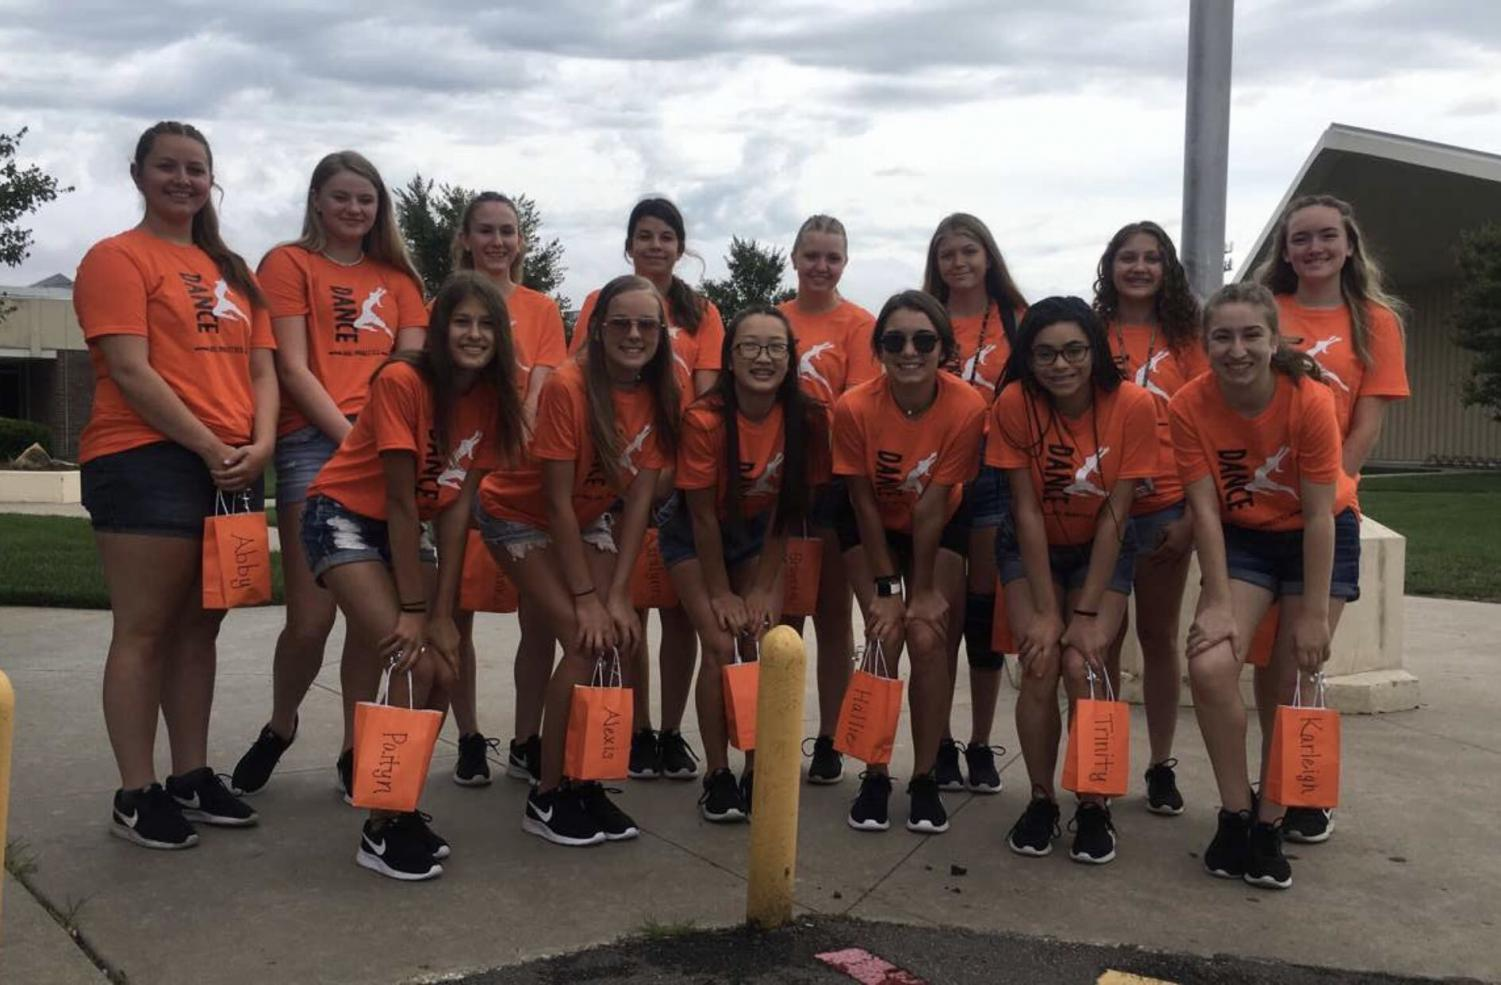 The Dance team poses in front of the high school before departing for their summer camp in Emporia. Senior Maddie Ray, junior Alexis Semisch, sophomore Trinity Tisdale, freshmen Lana Wood, and Aaralynn Chavana were nominated for the All-American dance team